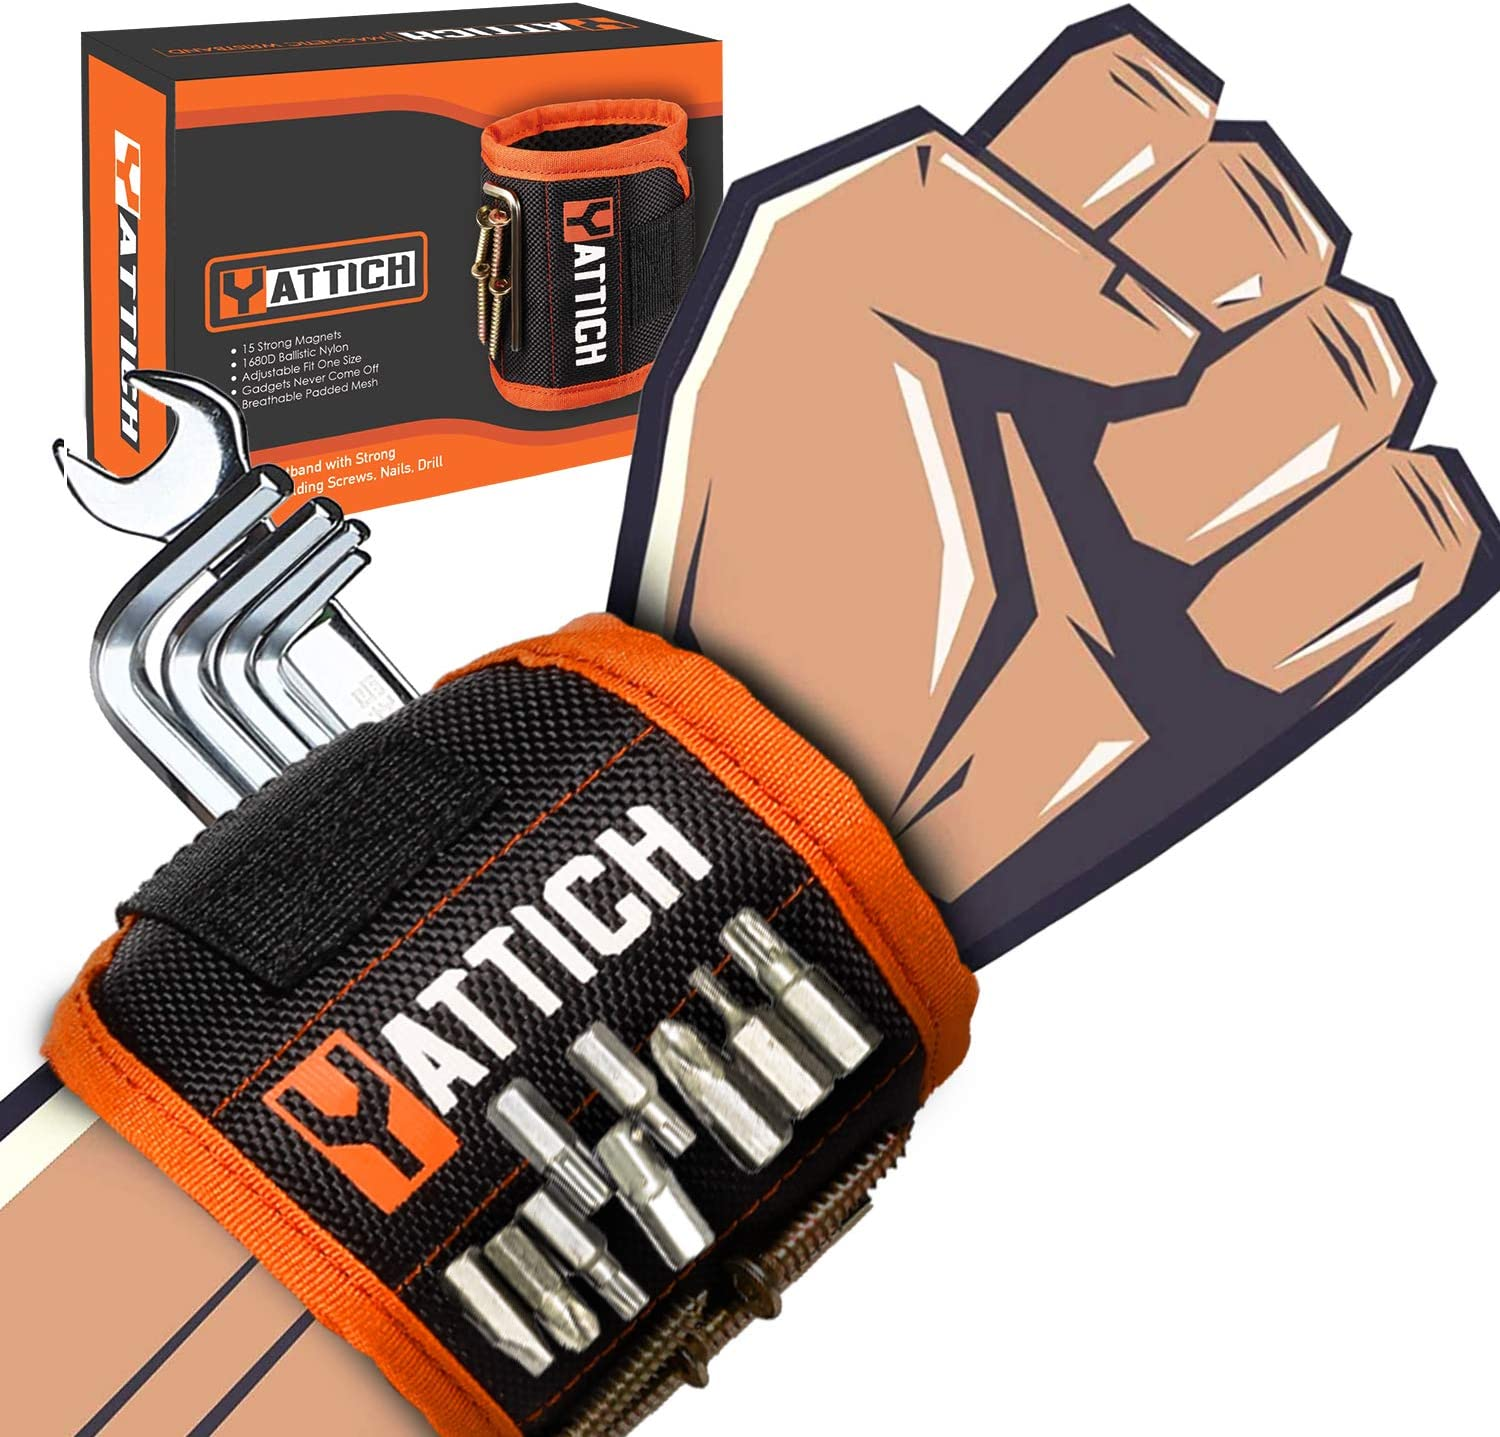 YATTICH Magnetic Wristband for OFFicial mail order Holding Choice fo Screw Belts Tool Gift